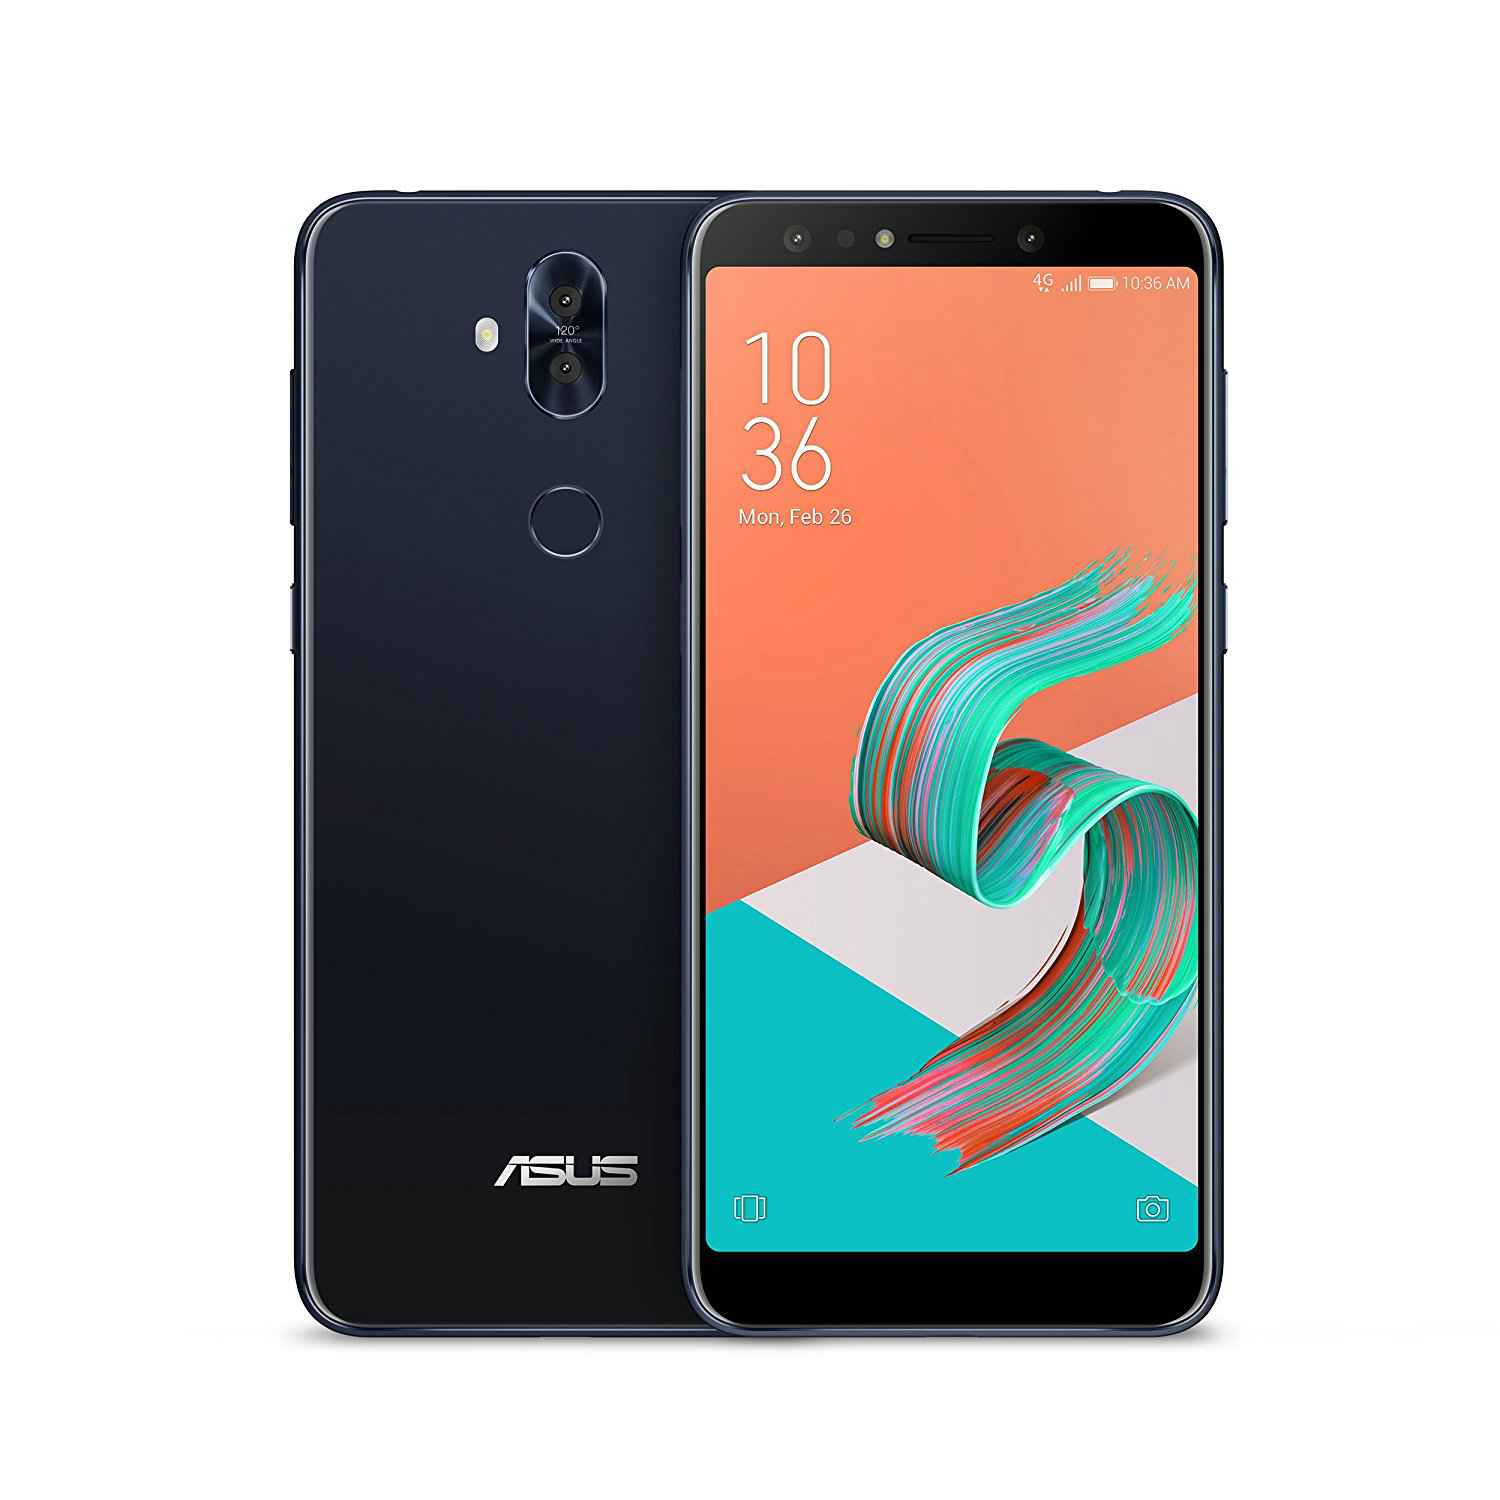 Asus ZenFone 5Q Specifications